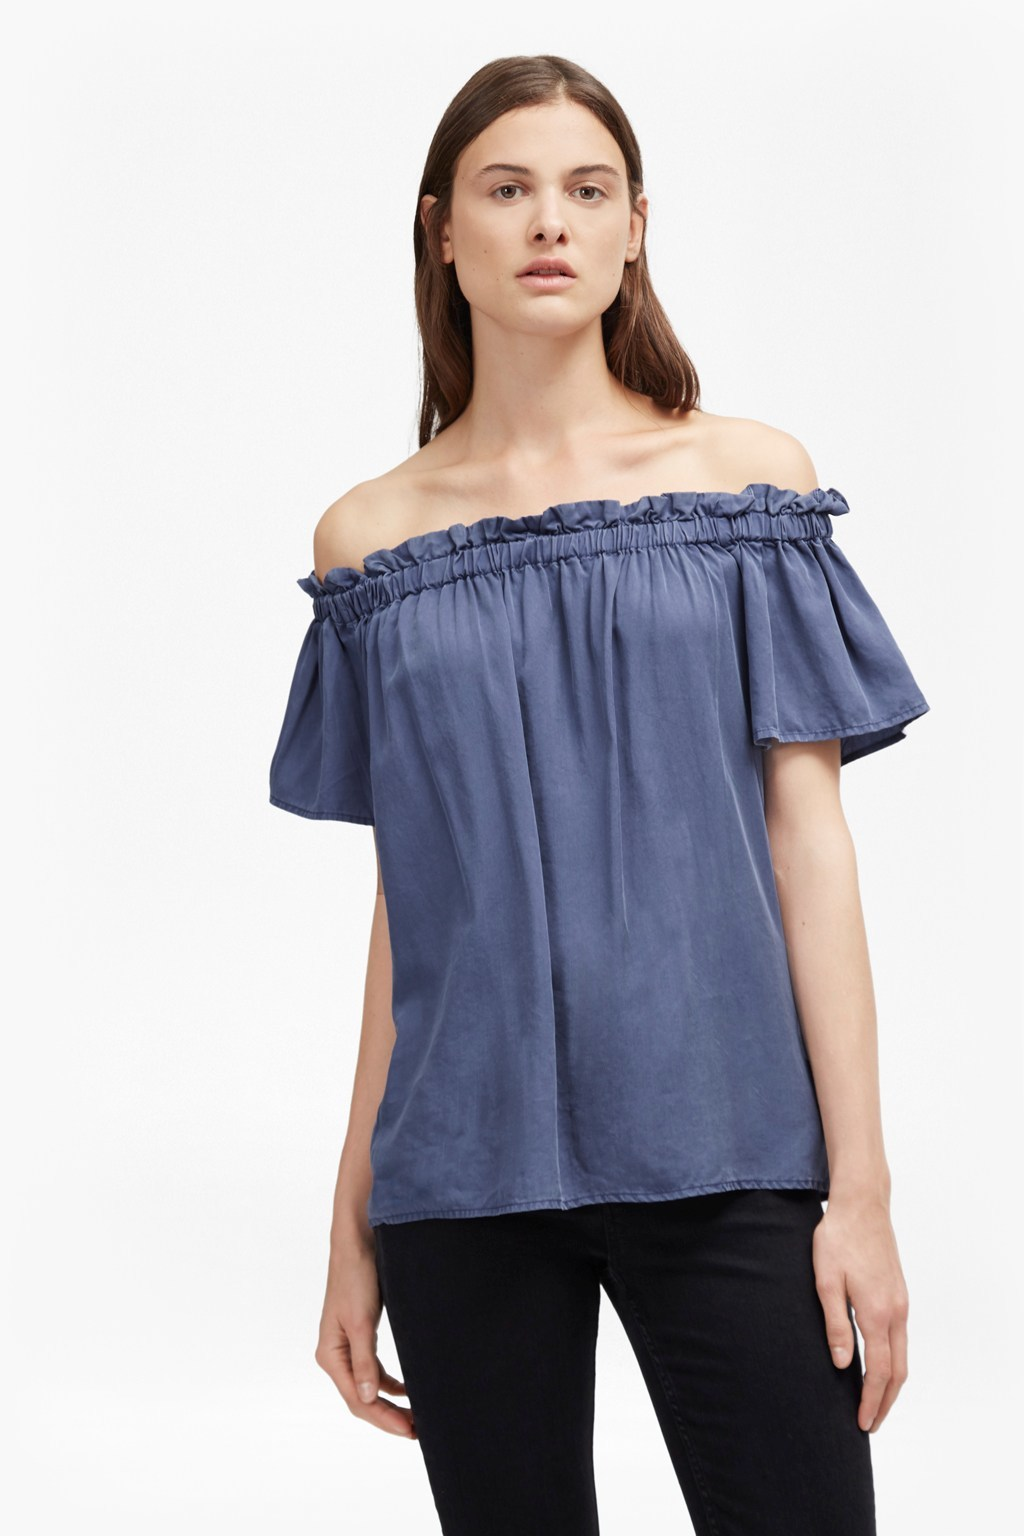 Stayton Cobalt Ruffle Bardot Top Cobalt - neckline: off the shoulder; sleeve style: angel/waterfall; pattern: plain; predominant colour: denim; occasions: casual; length: standard; fibres: cotton - 100%; fit: loose; style: gypsy/peasant; sleeve length: short sleeve; texture group: cotton feel fabrics; pattern type: fabric; season: a/w 2016